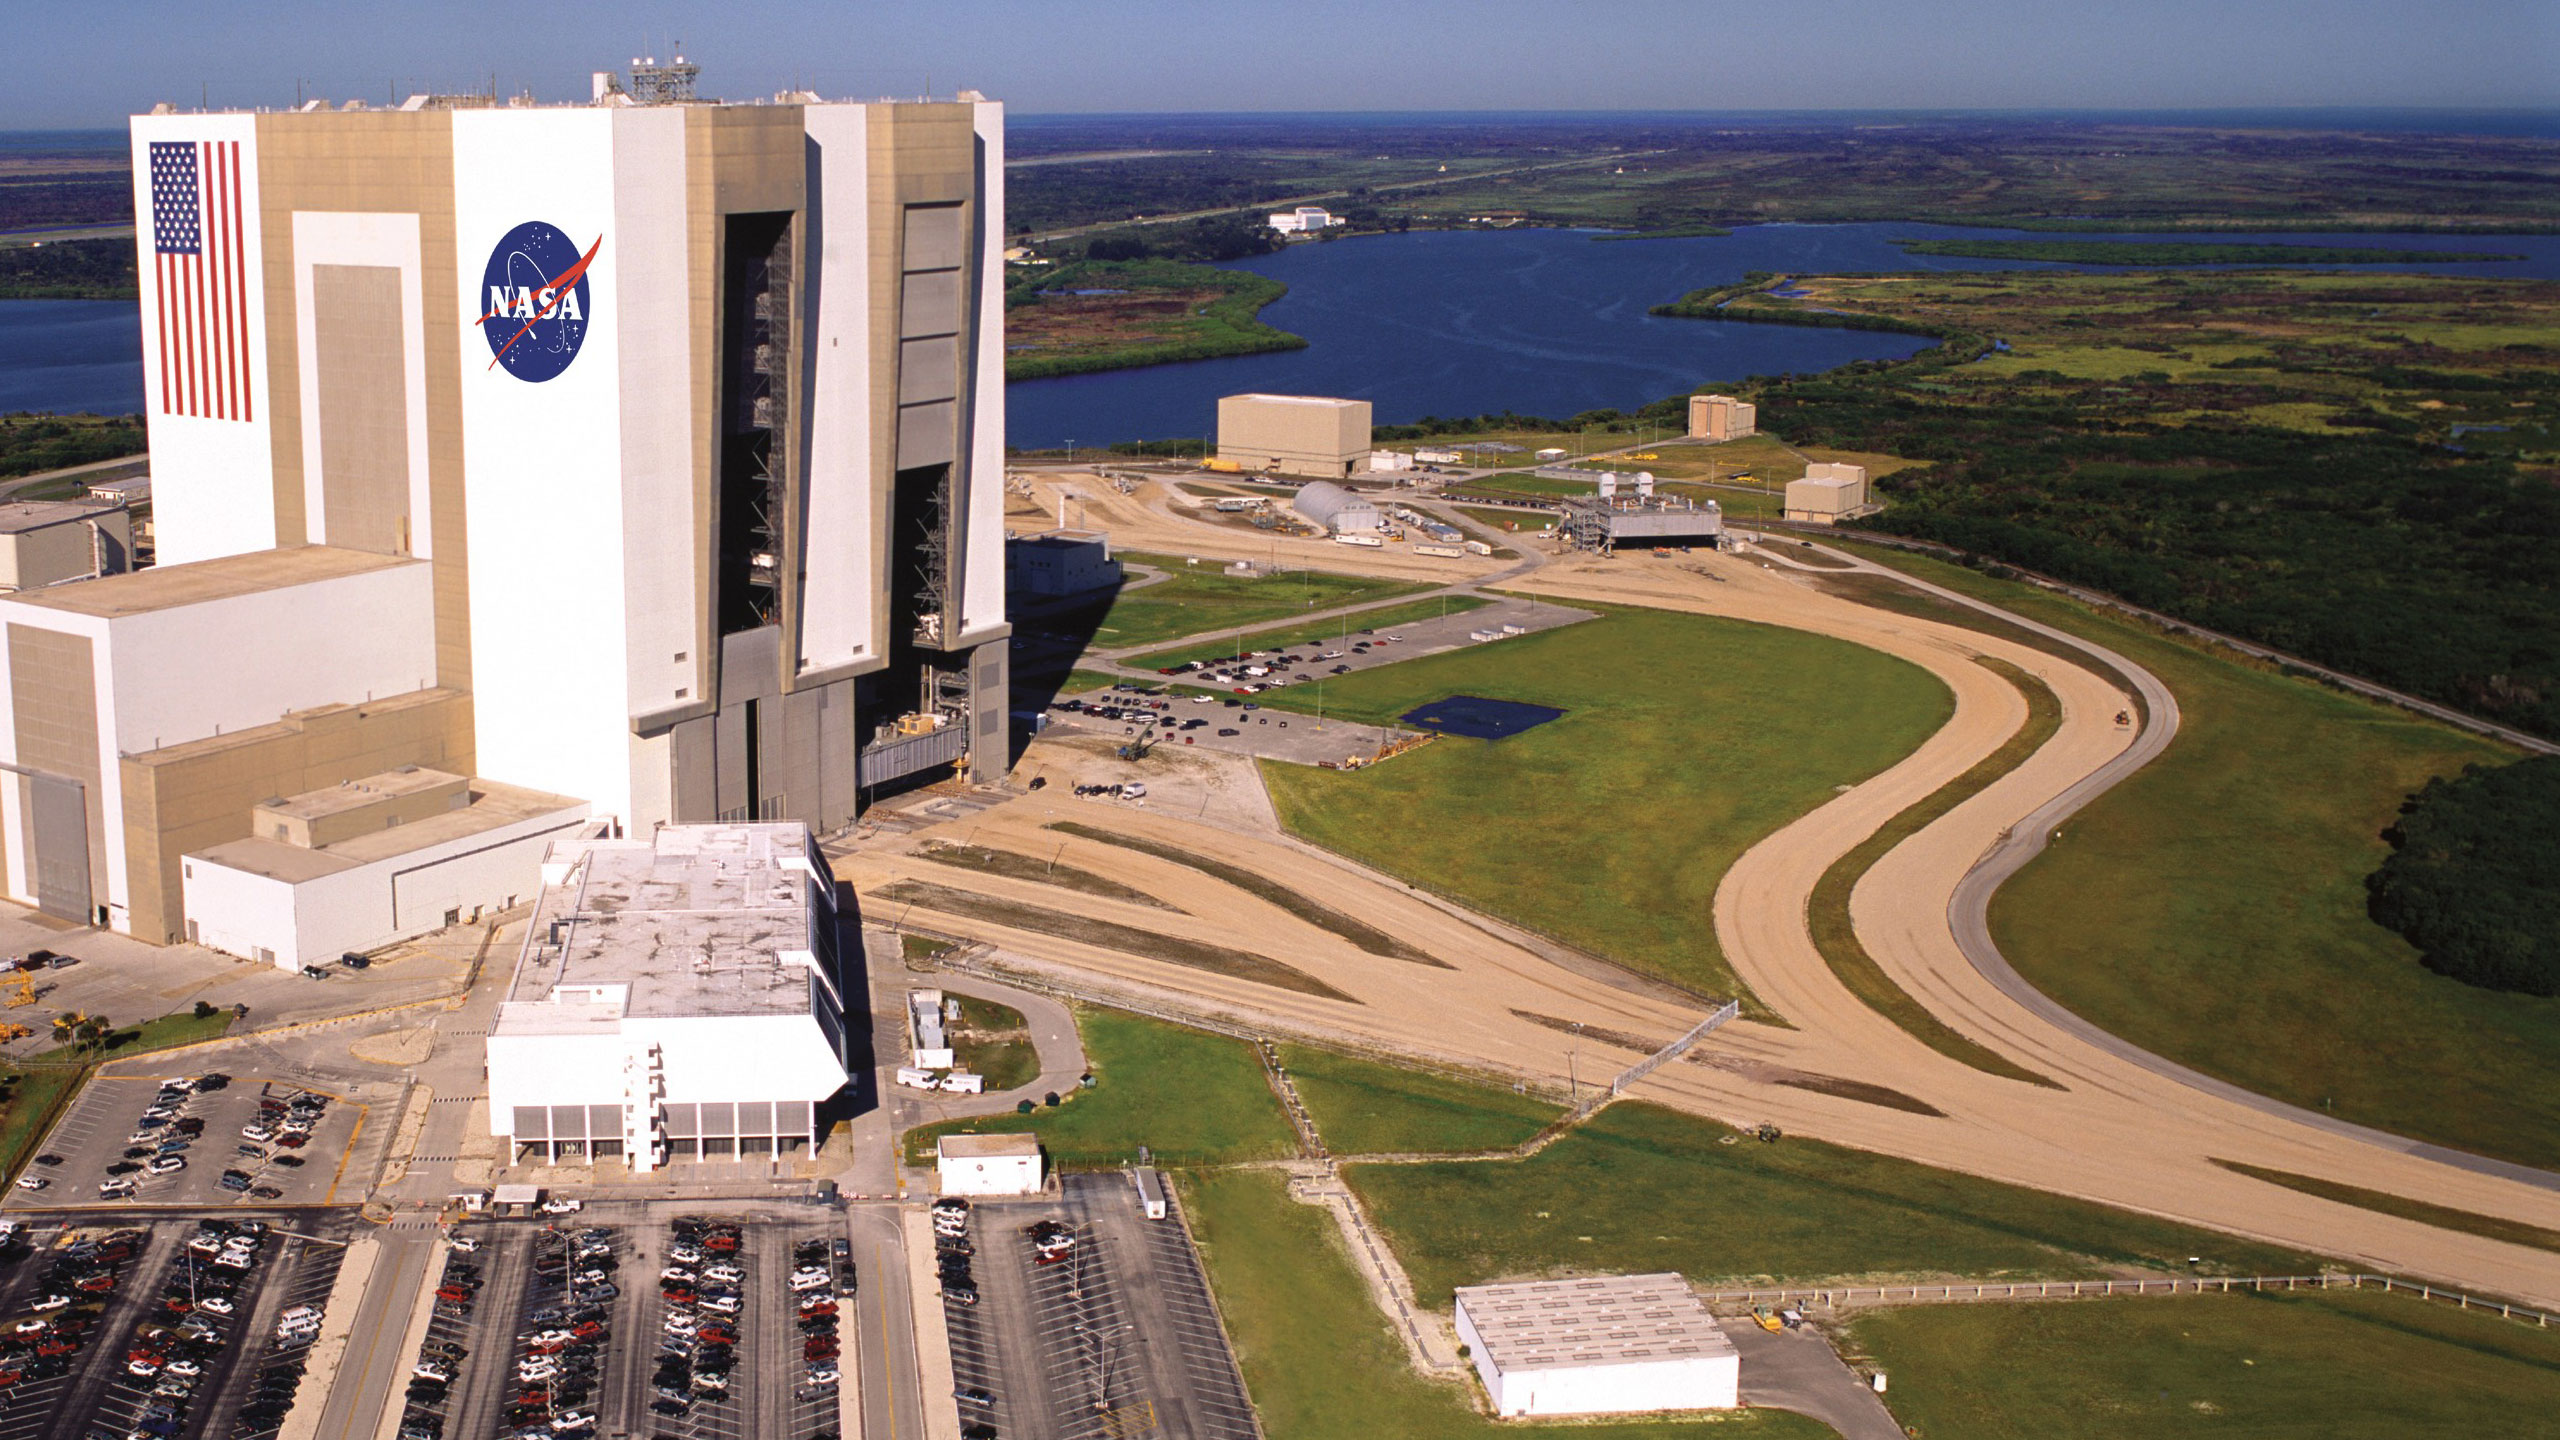 VAB at Kennedy Space Center